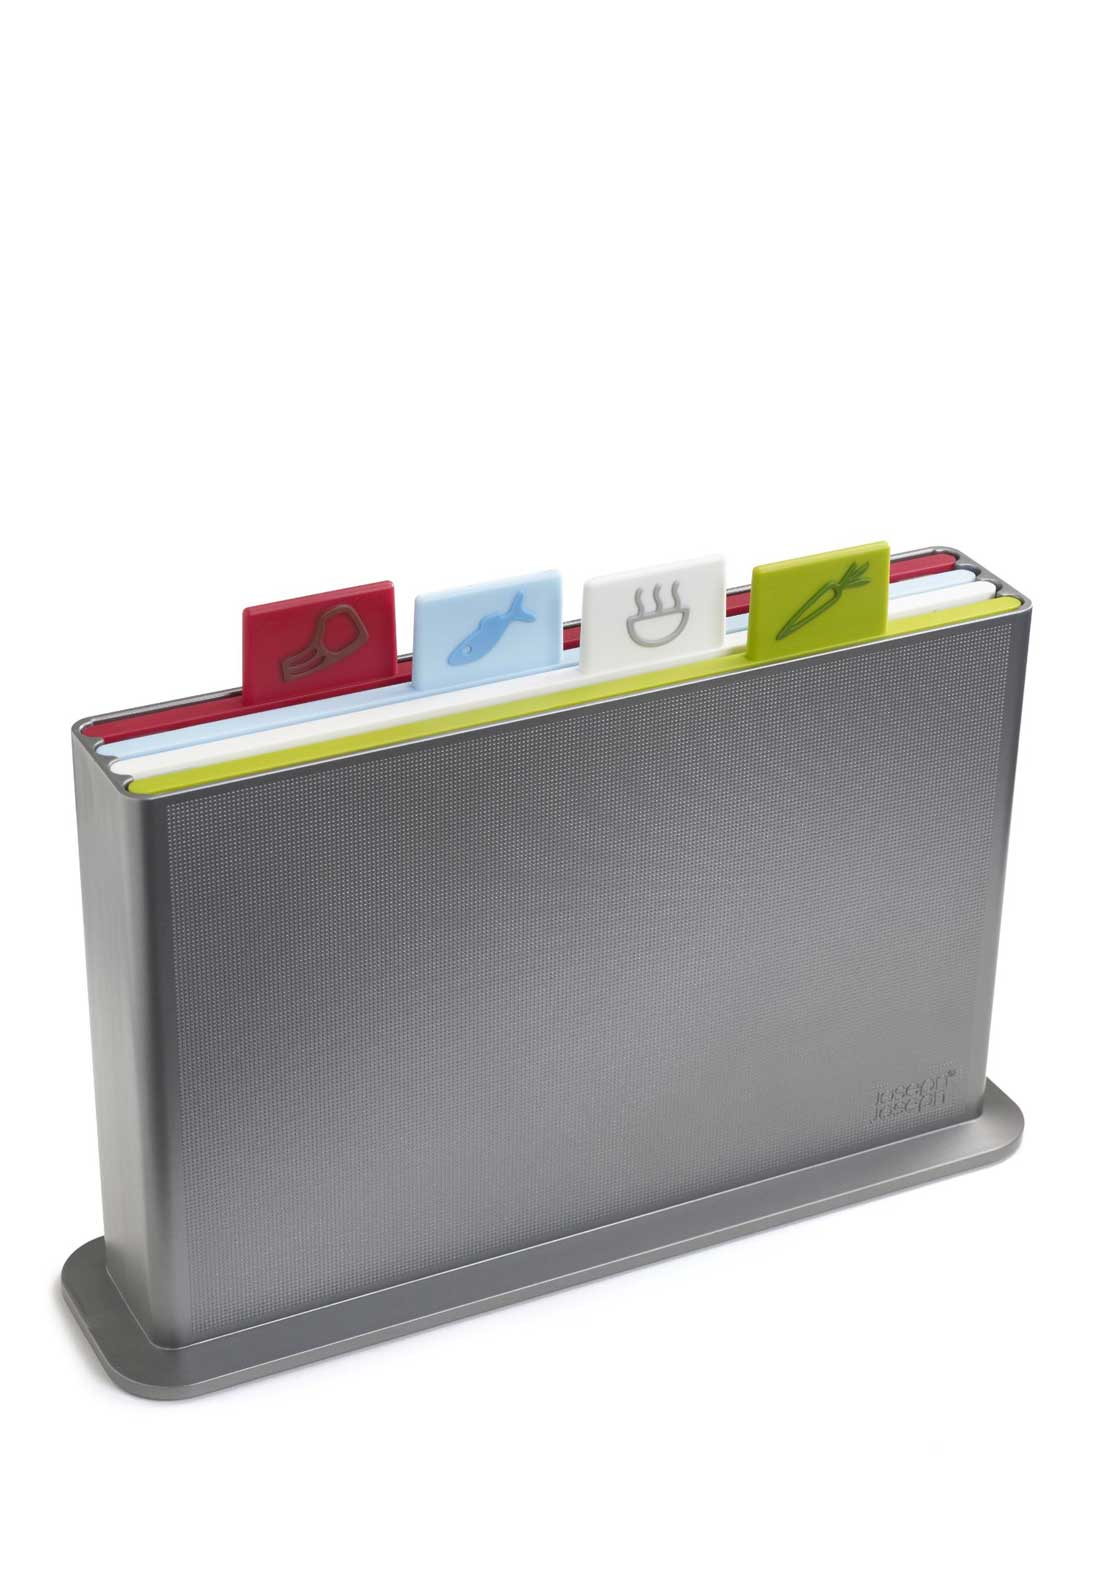 Joseph Joseph Index Advance Chopping Board Set, Silver